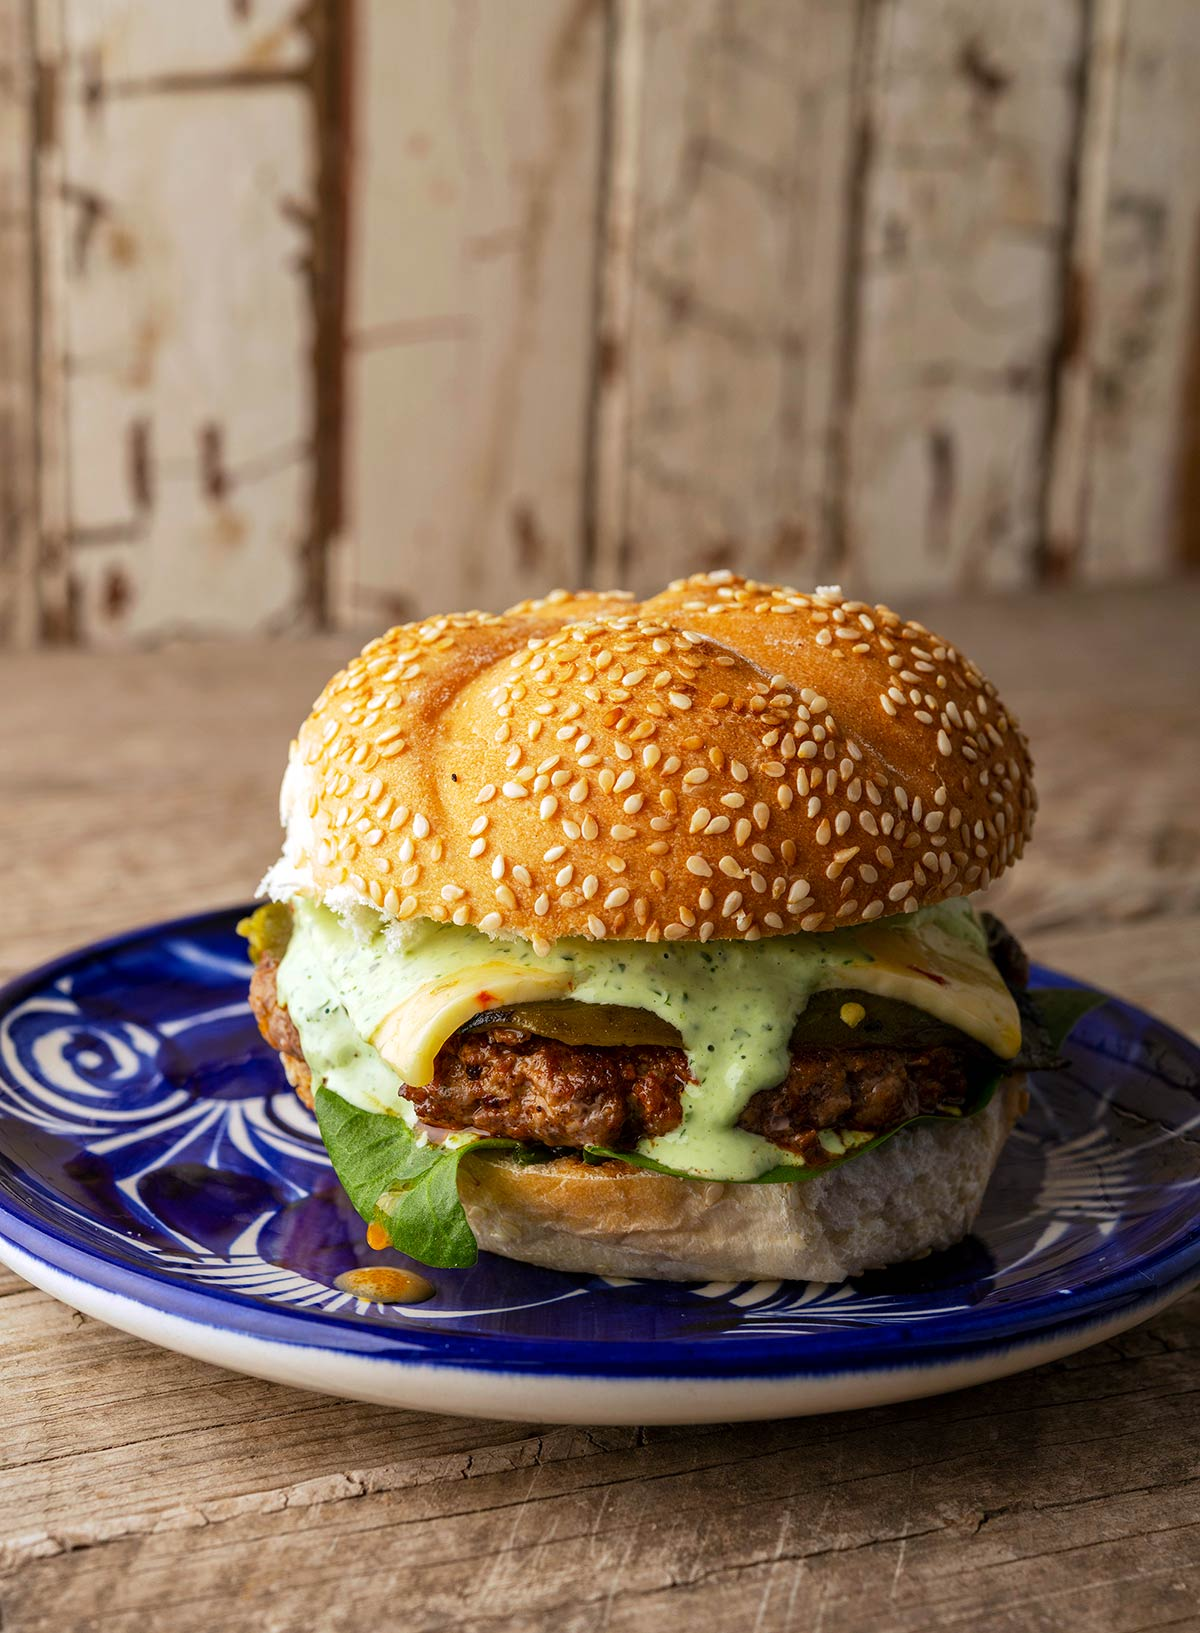 A chorizo burger on a plate, ready to eat.